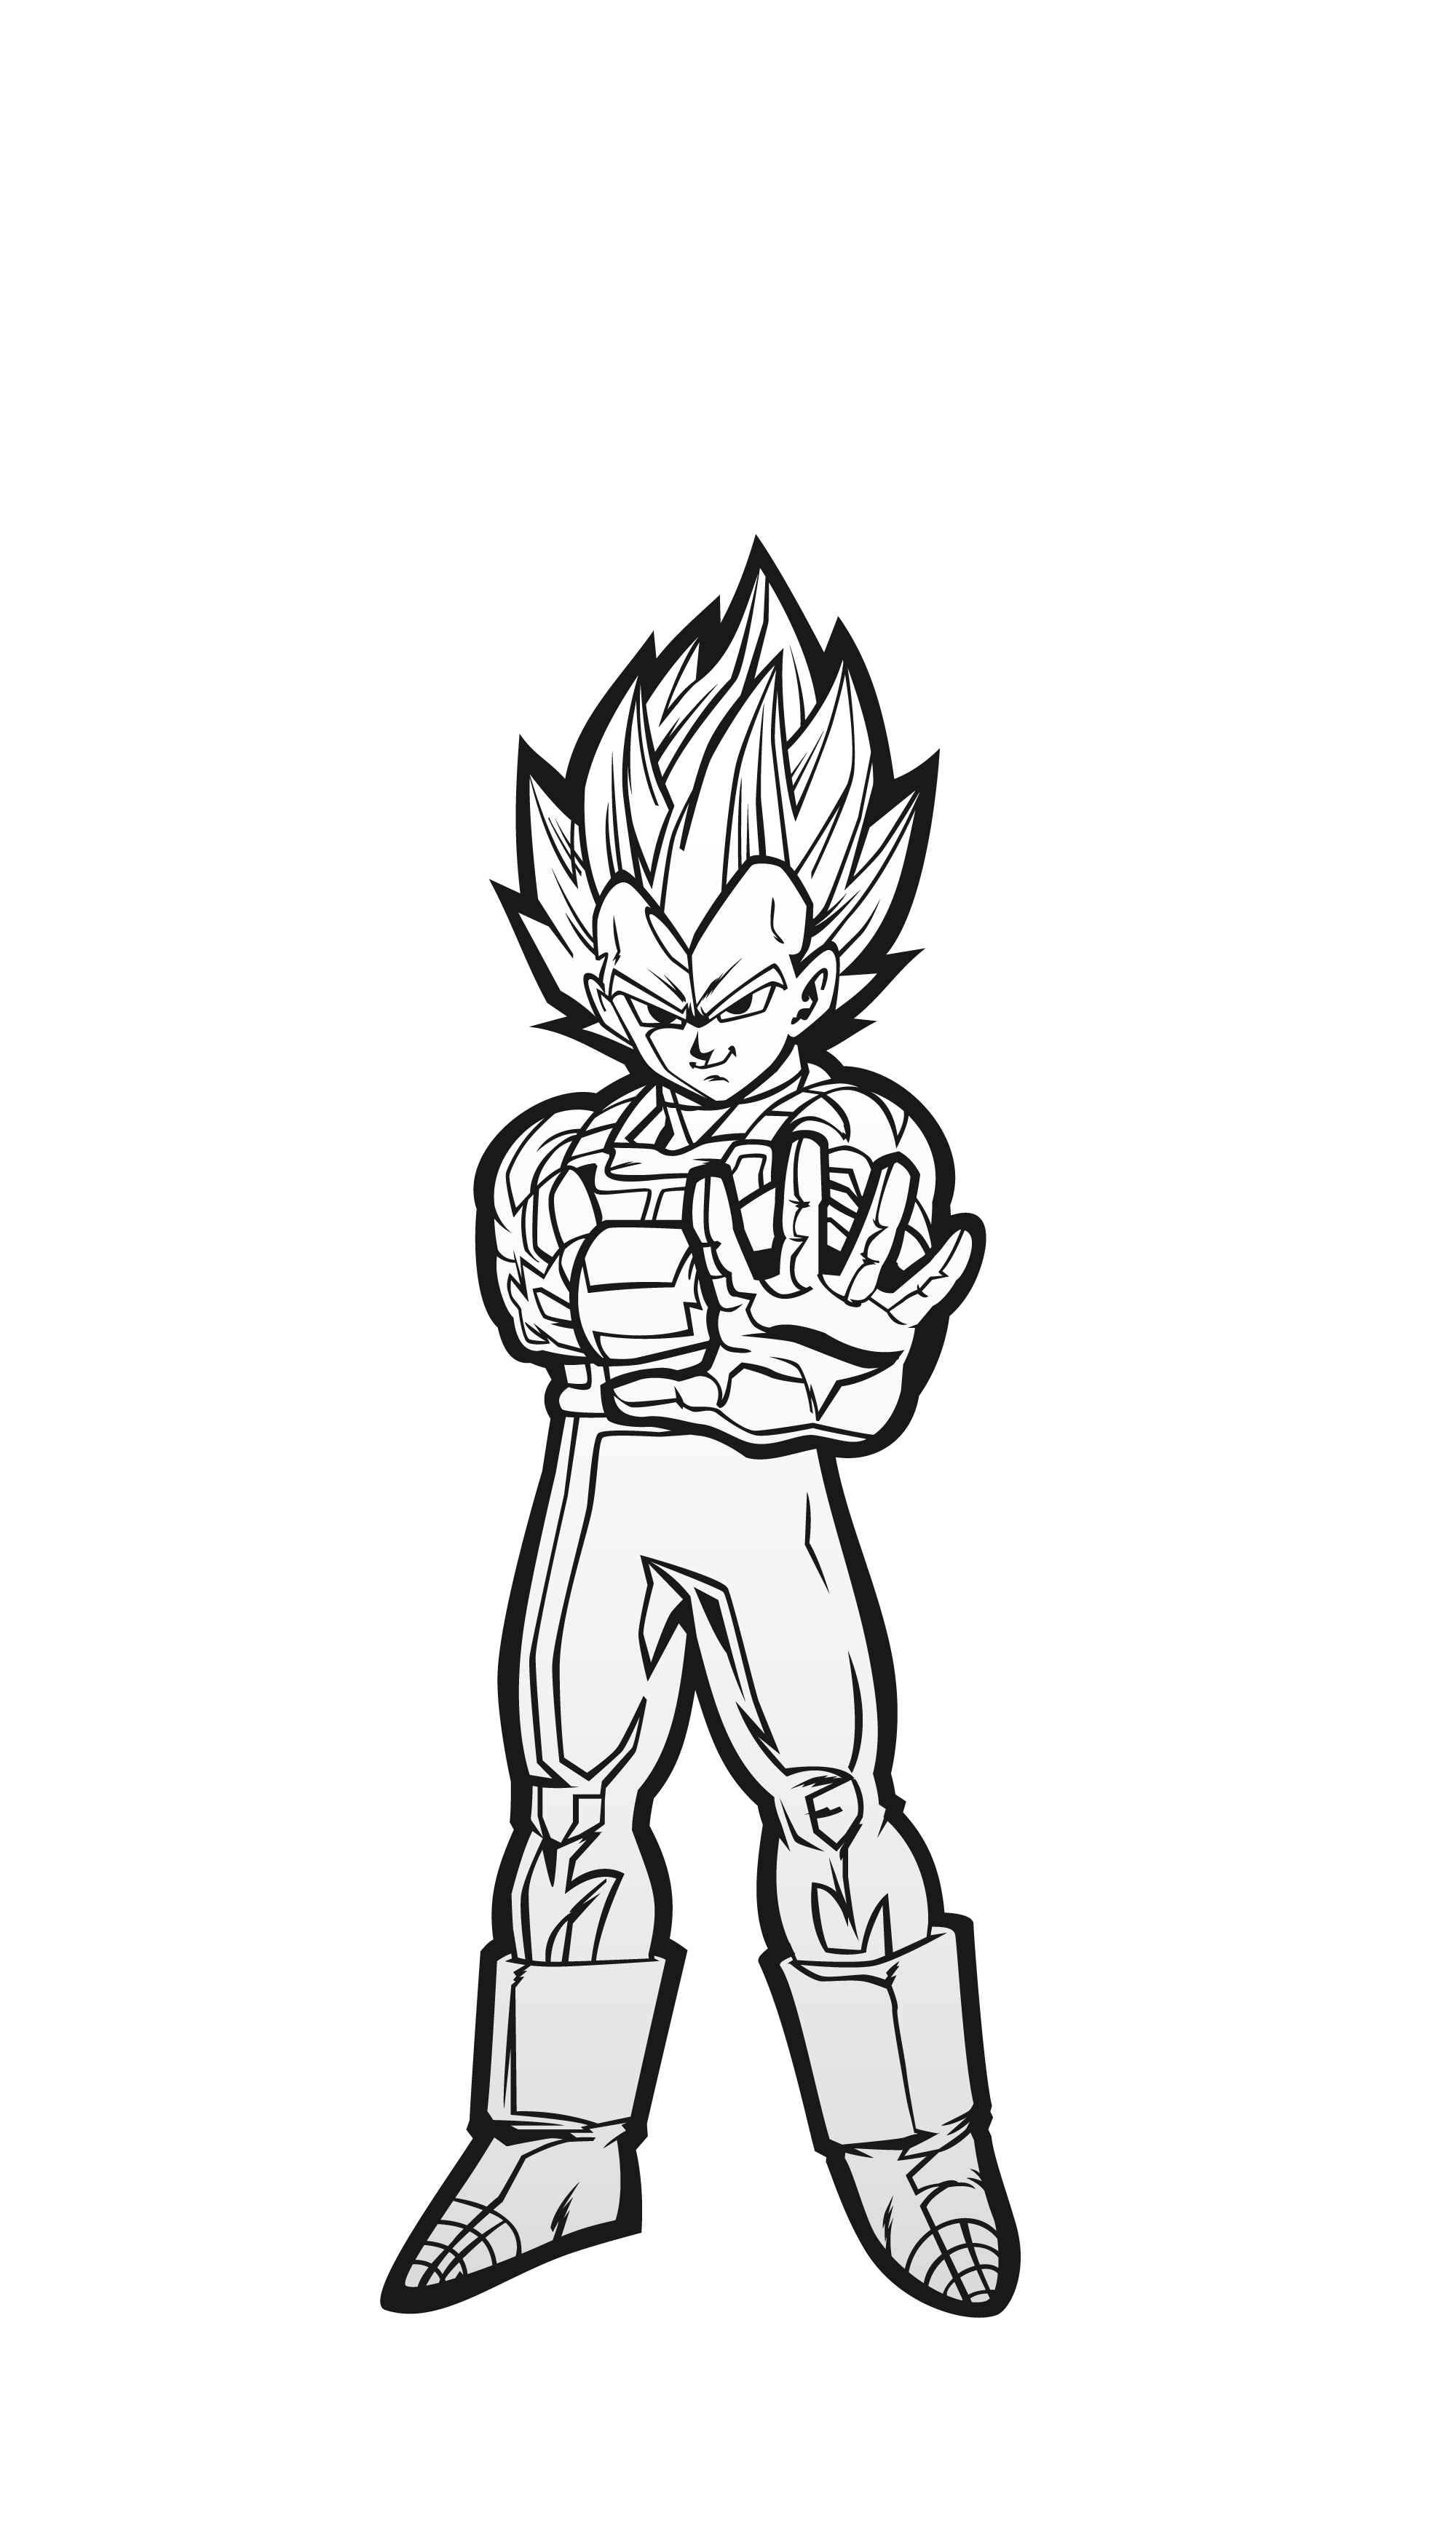 Drawing dbz black and white. Super saiyan vegeta figpin